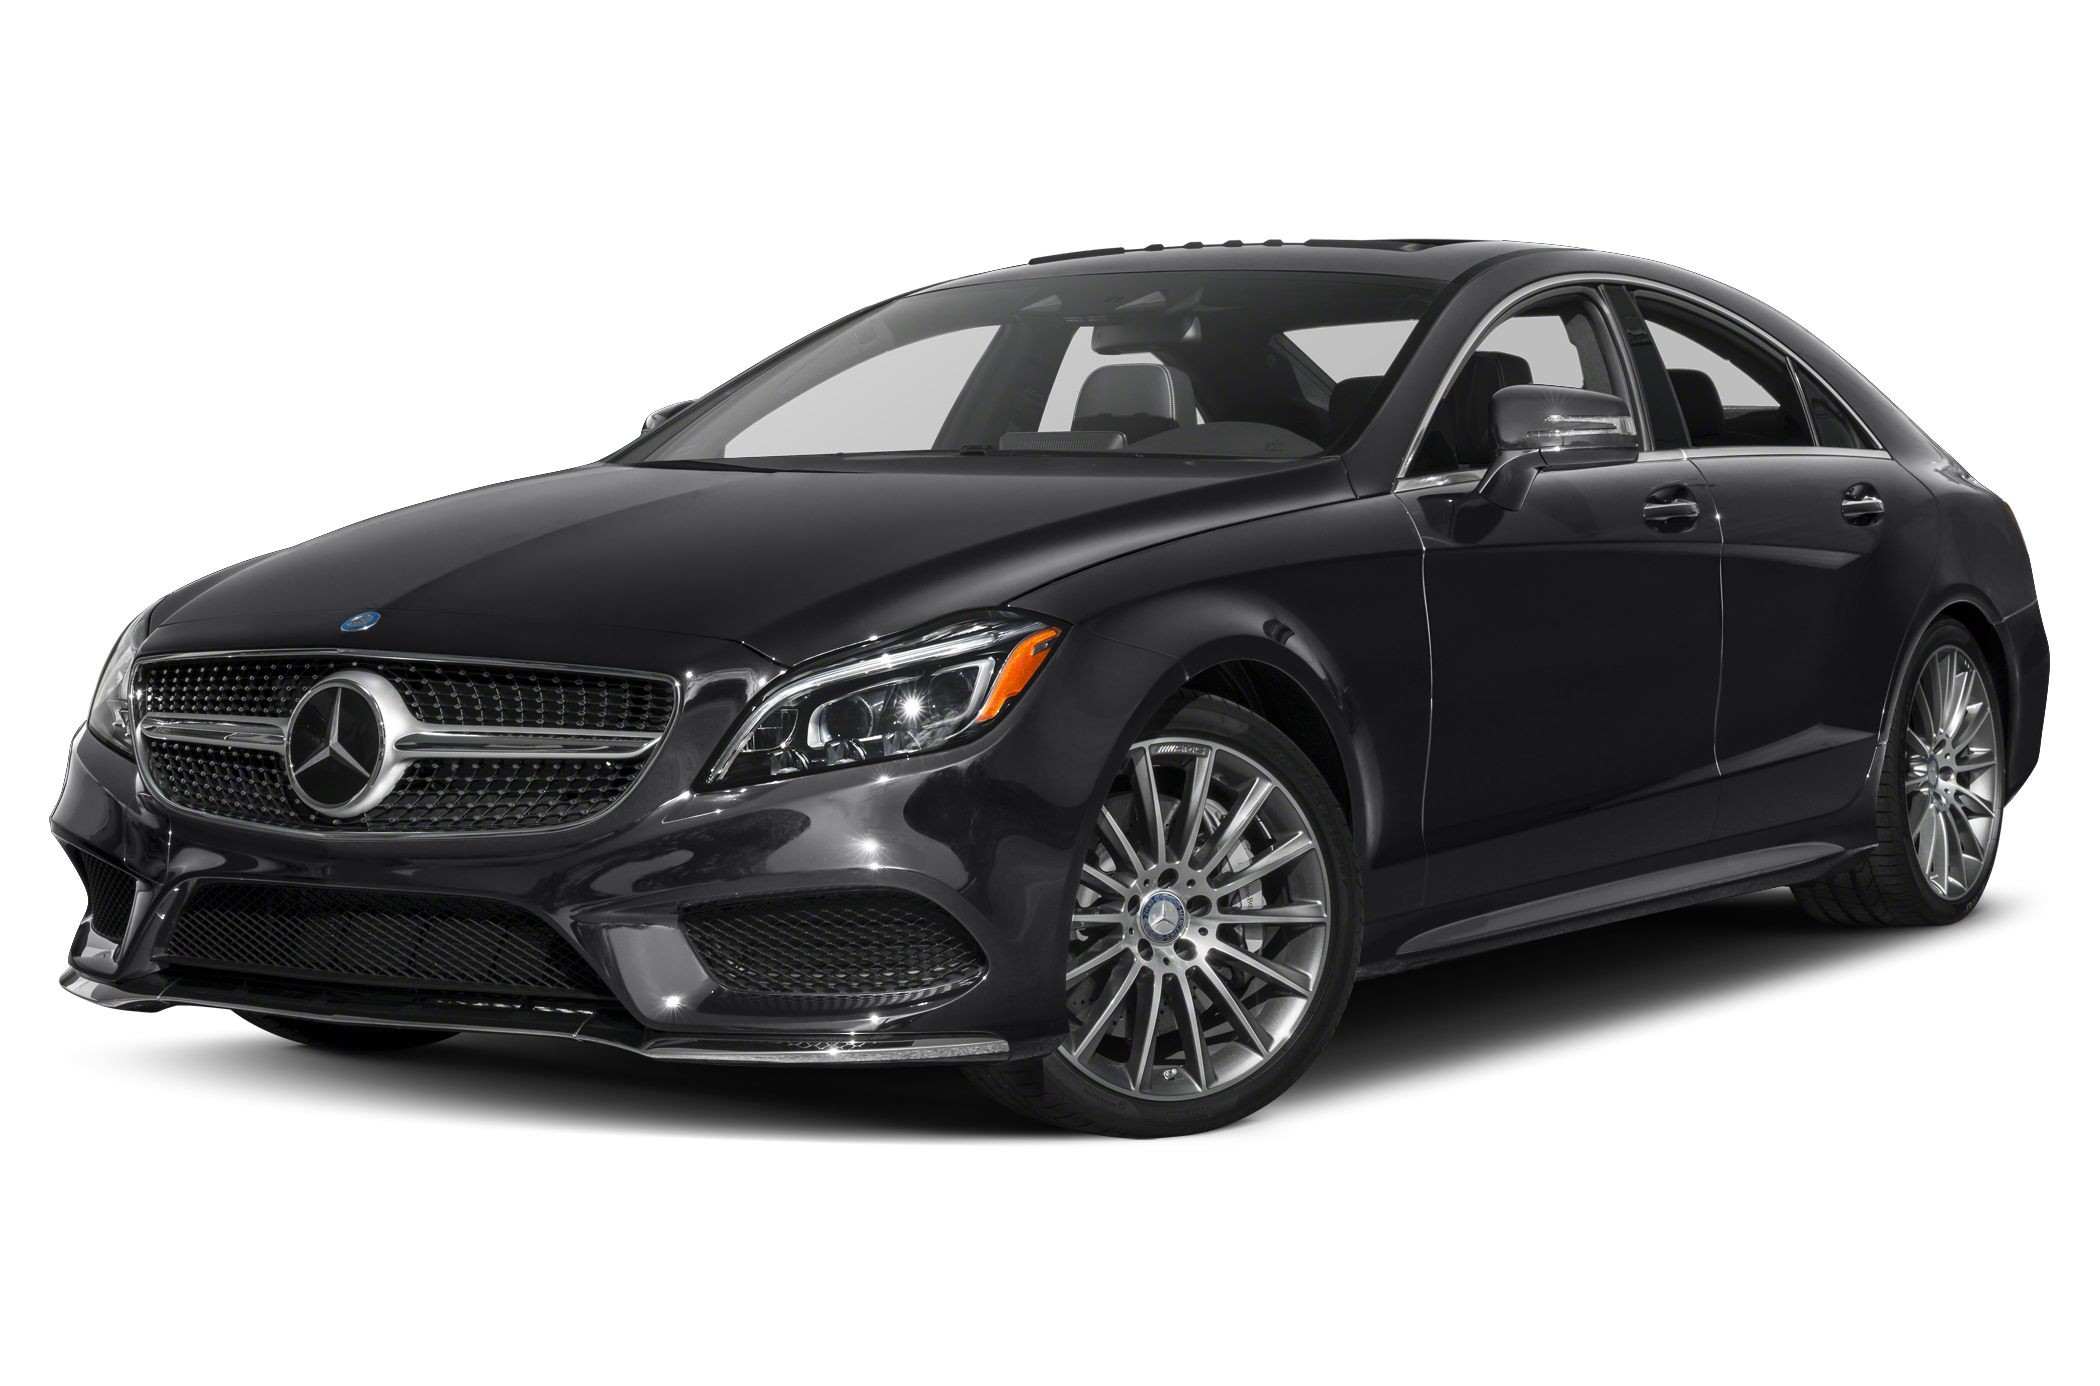 2015 mercedes benz cls class with multibeam led headlights. Black Bedroom Furniture Sets. Home Design Ideas